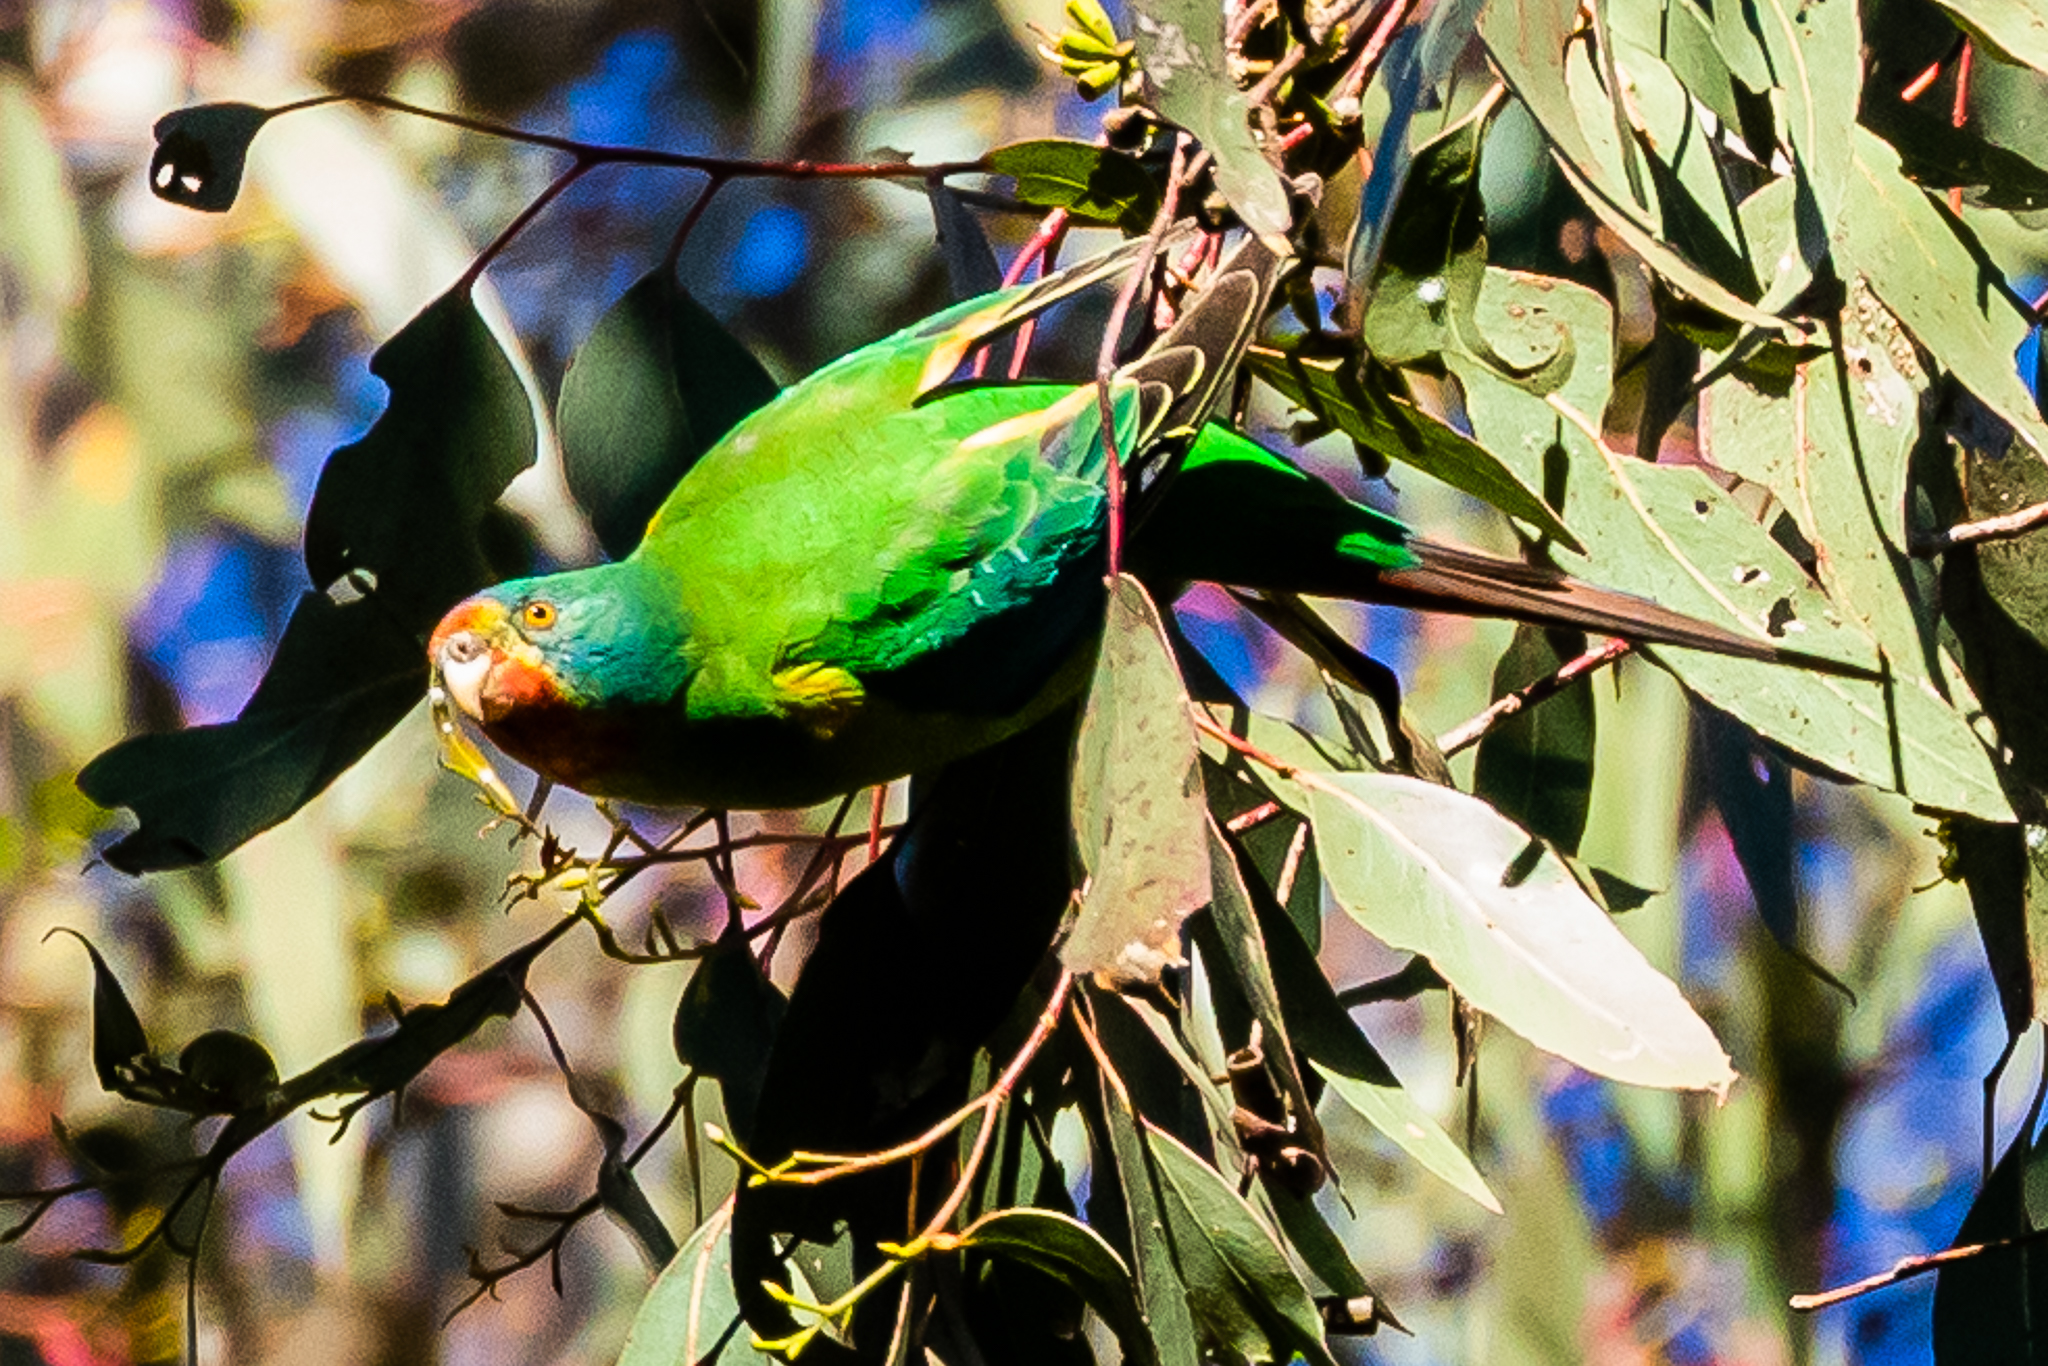 The Swift Parrot (26 cm) is named for its swift flight.They feed on nectar and lerps high in the canopy of eucalypts. Swift parrots breed in Tasmania and migrate north to Australia's south east region. Forest clearing has caused declines in numbers and it is now listed as an endangered species.